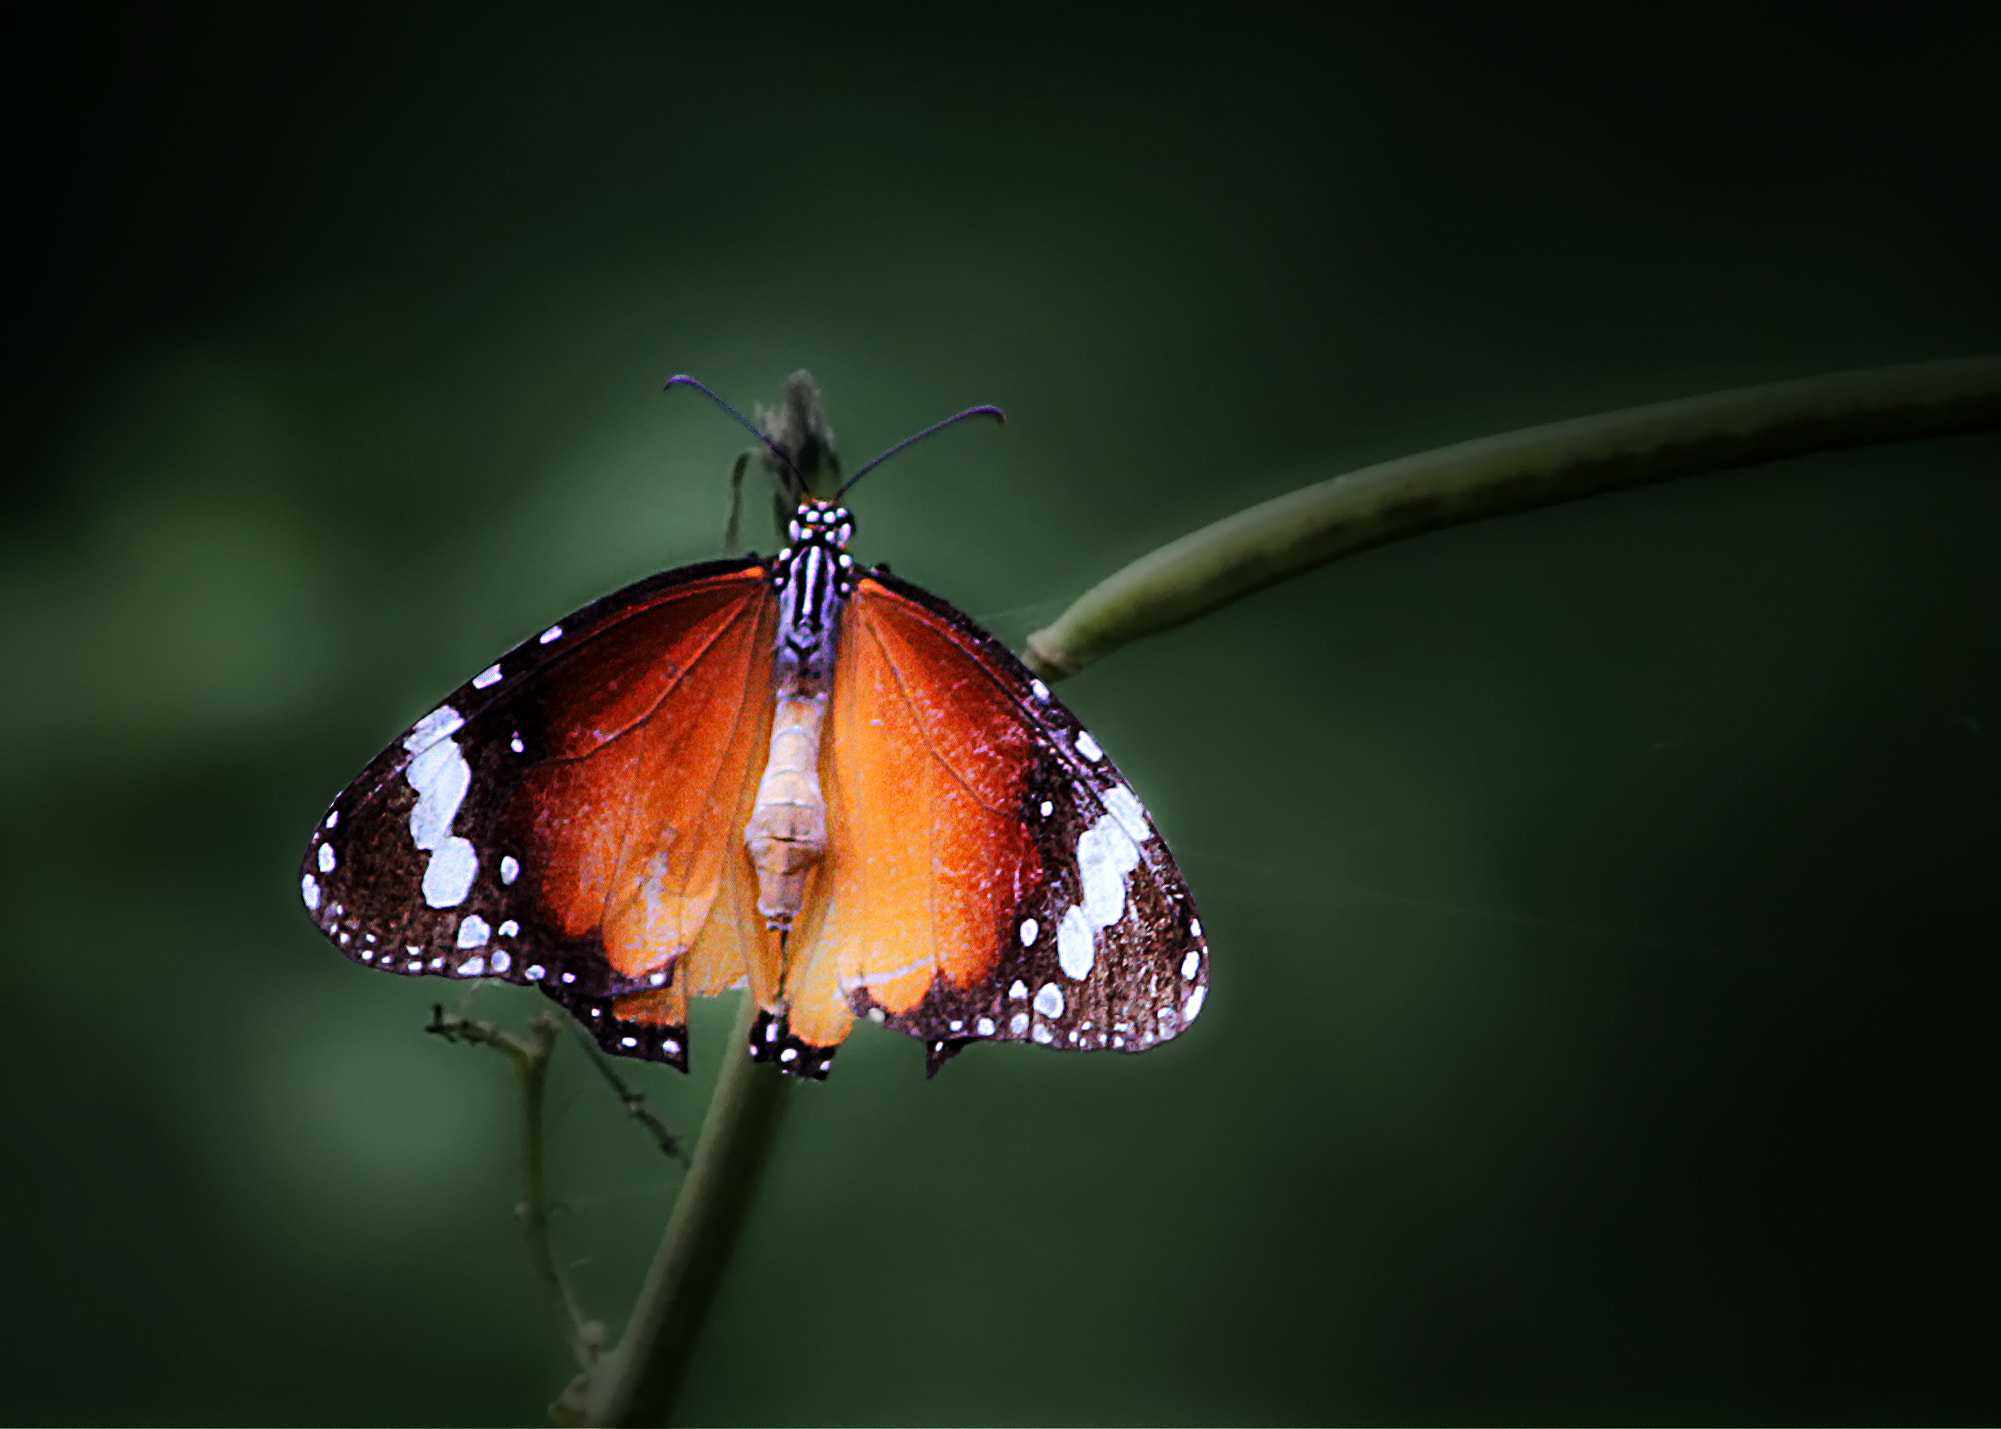 Photograph Plain Tiger Butterfly by Subhash Masih on 500px